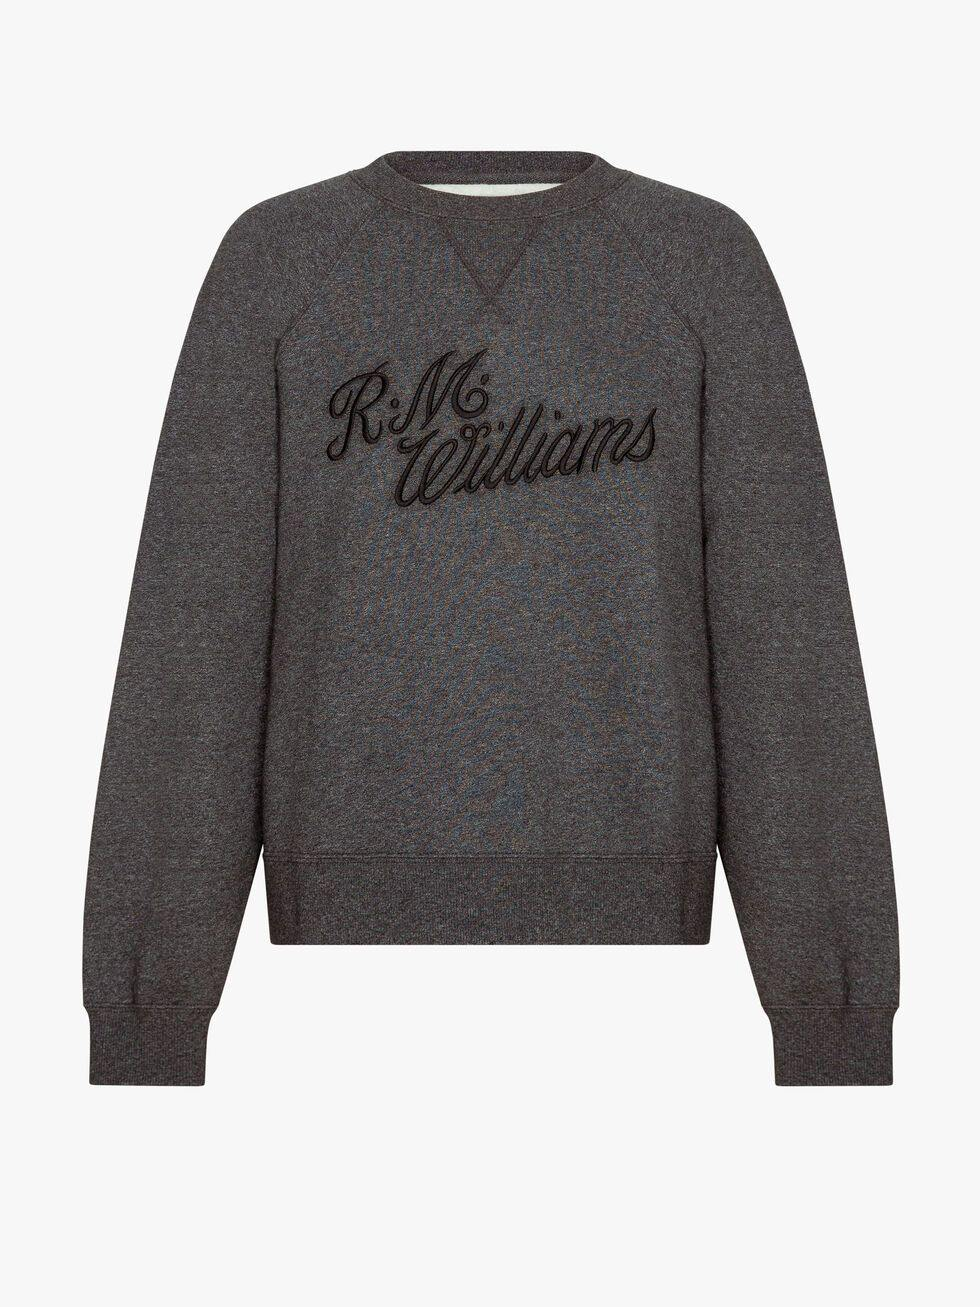 RM Williams Script Crew Neck available at My Harley and Rose